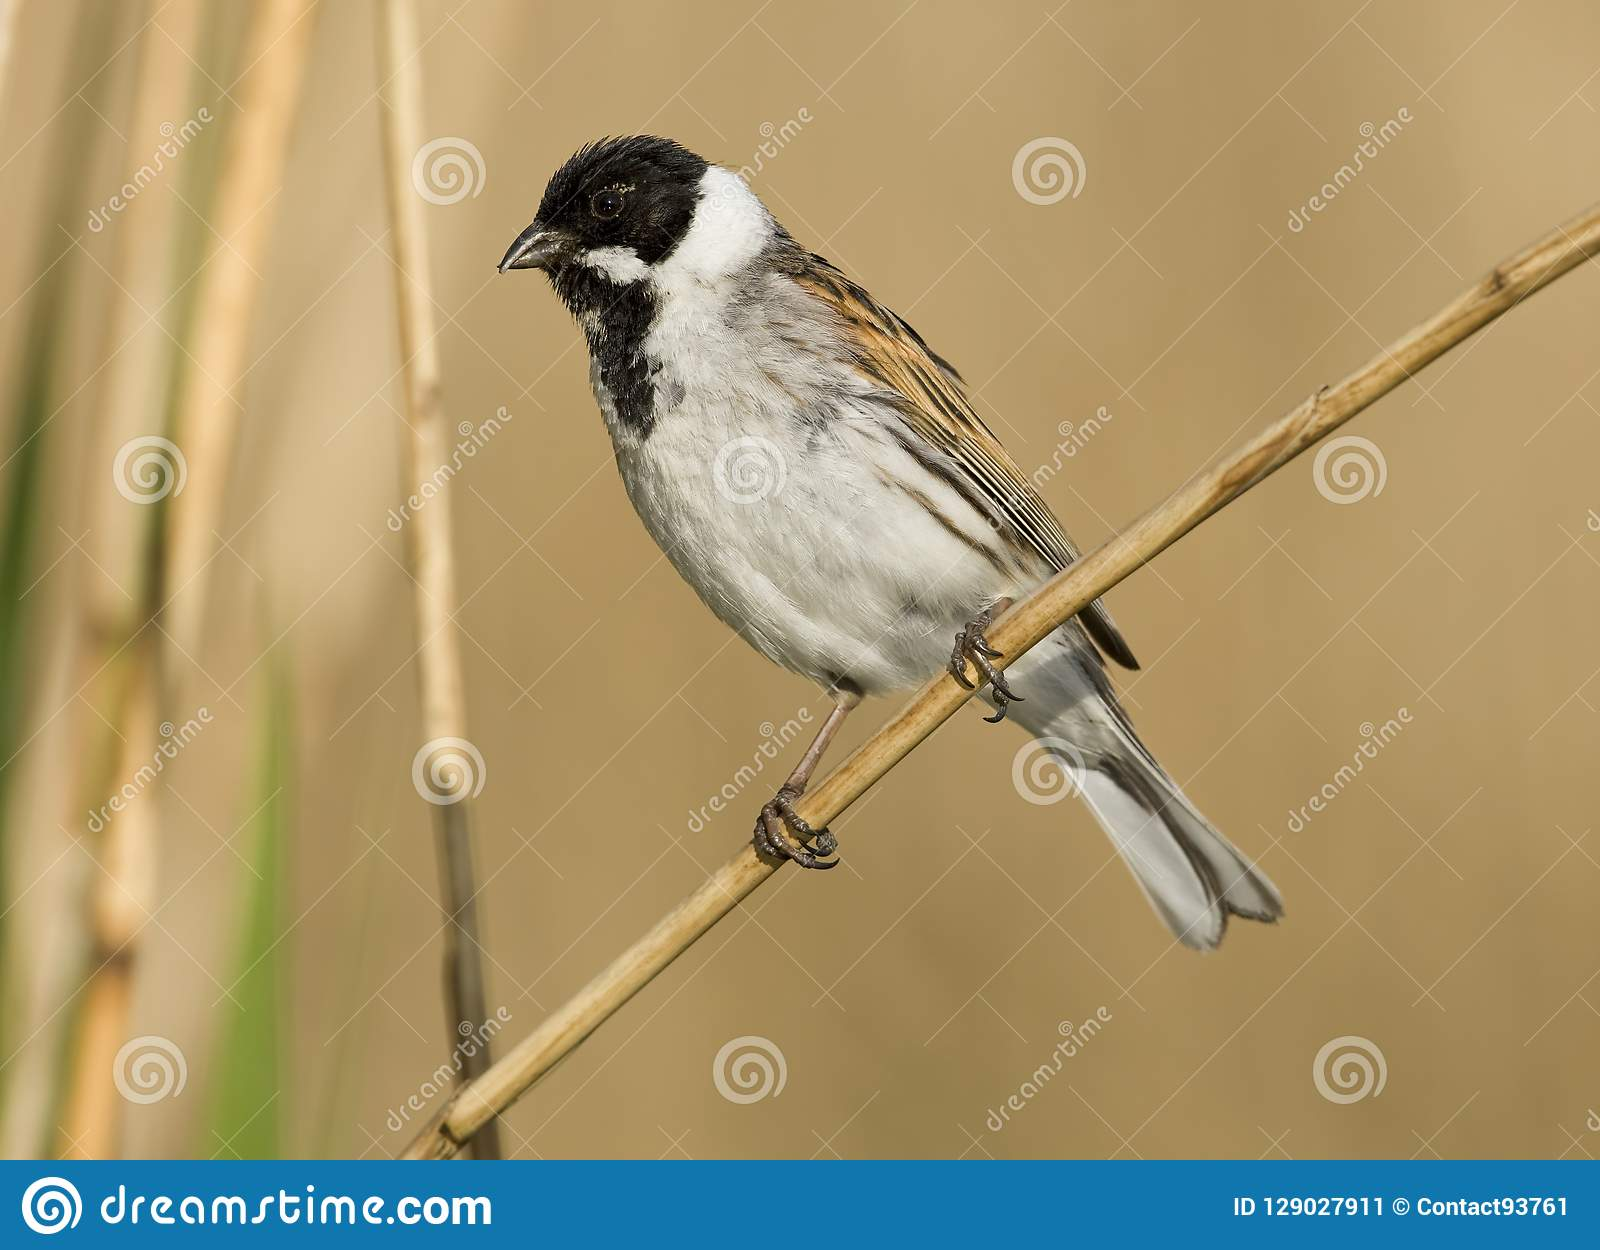 Rietgors, Reed Bunting comum, schoeniclus do Emberiza